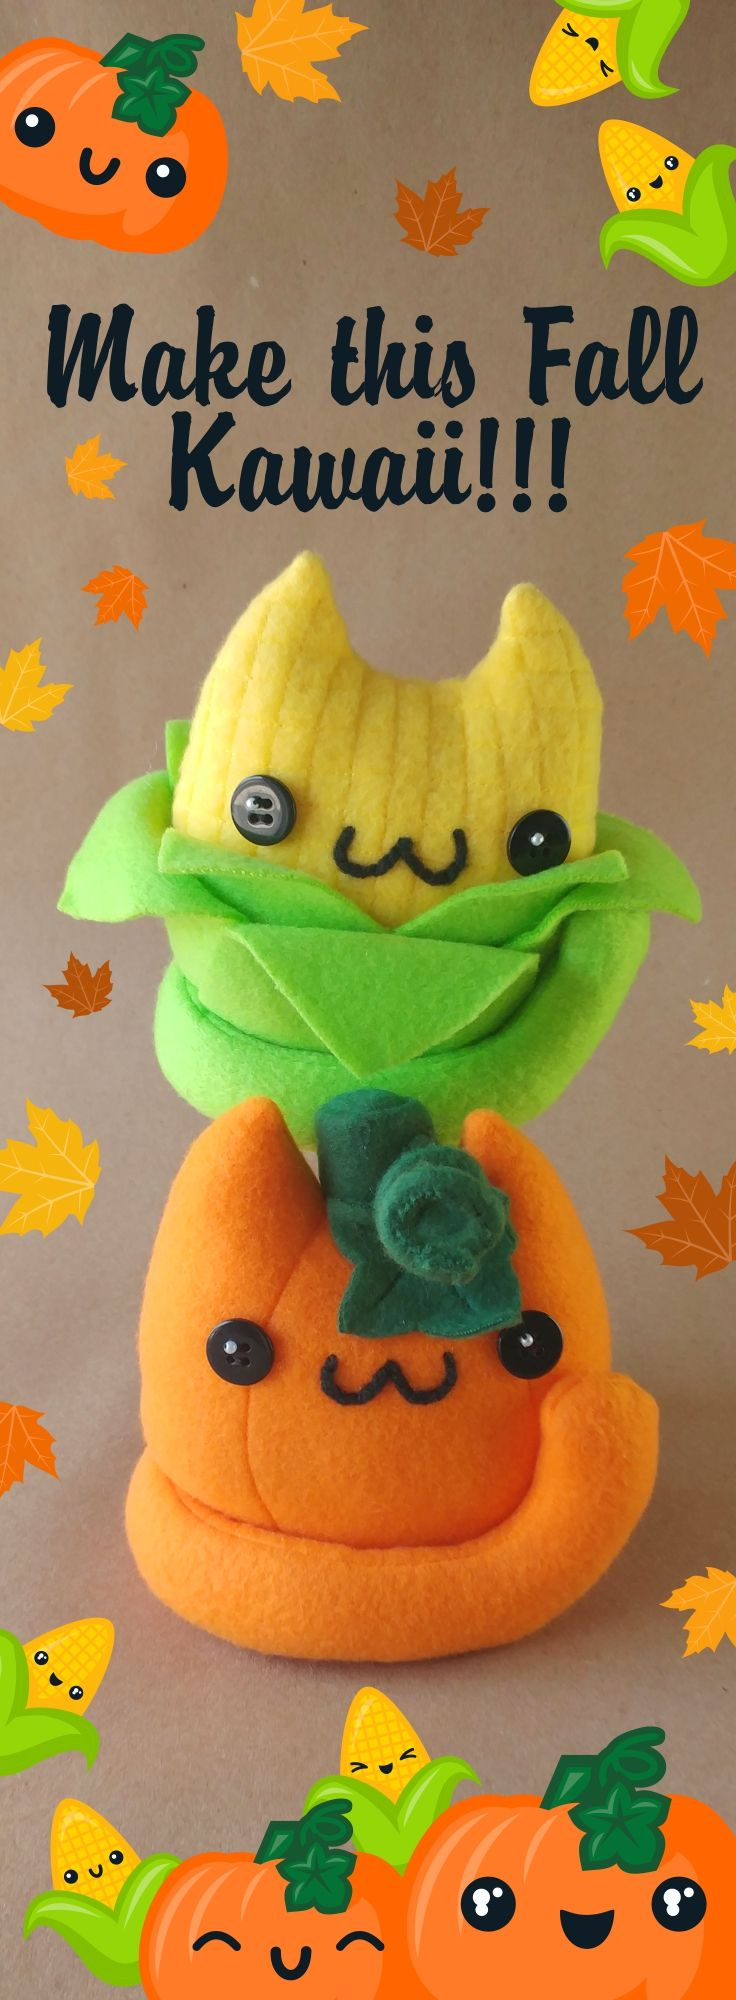 Make this fall Kawaii with a few cute cat food plushies from https://www.etsy.com/pushypushyupdowngo (perfect for Halloween and Thanksgiving decorations or general plush fun!)